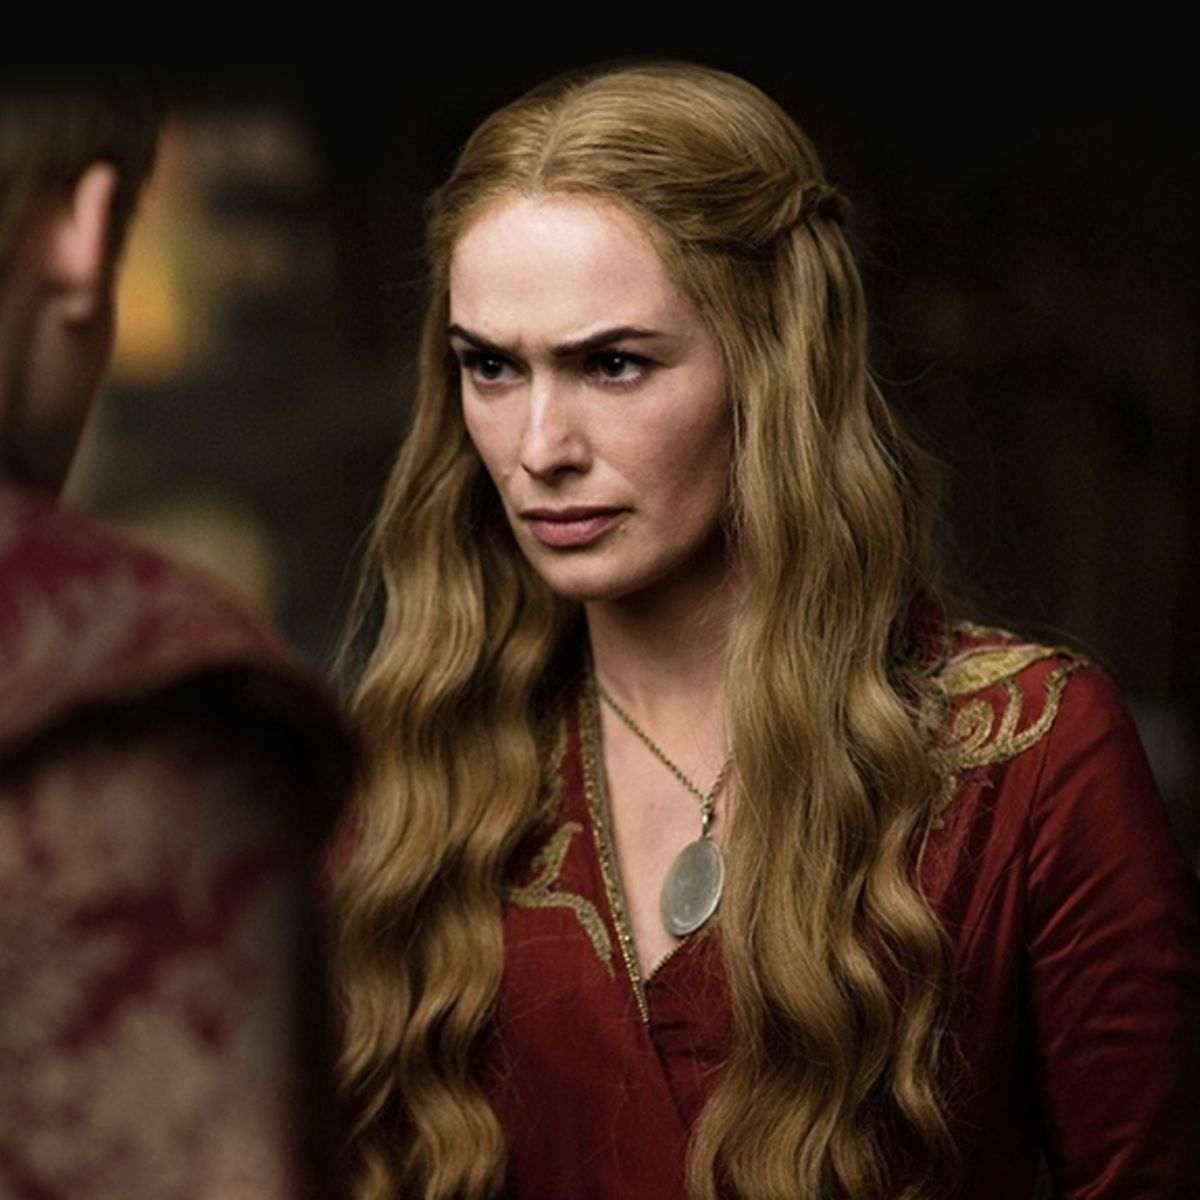 Game-Of-Thrones-Season-2-Still-Cersei-lena-headey-29953824-1018-576.jpg